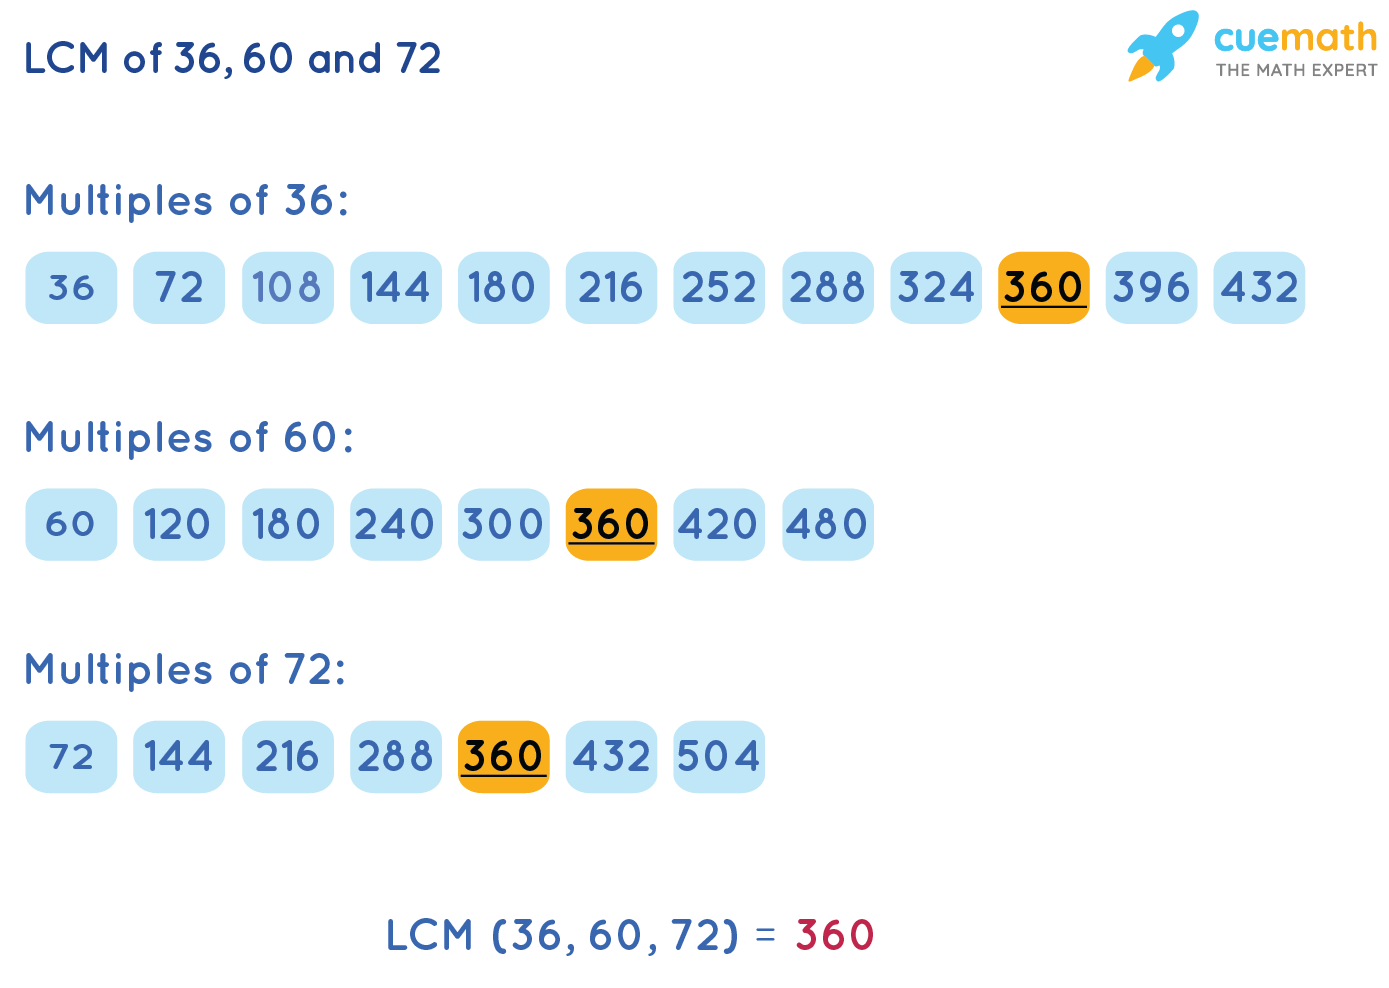 LCM of 36, 60 and 72by Lists of Multiples